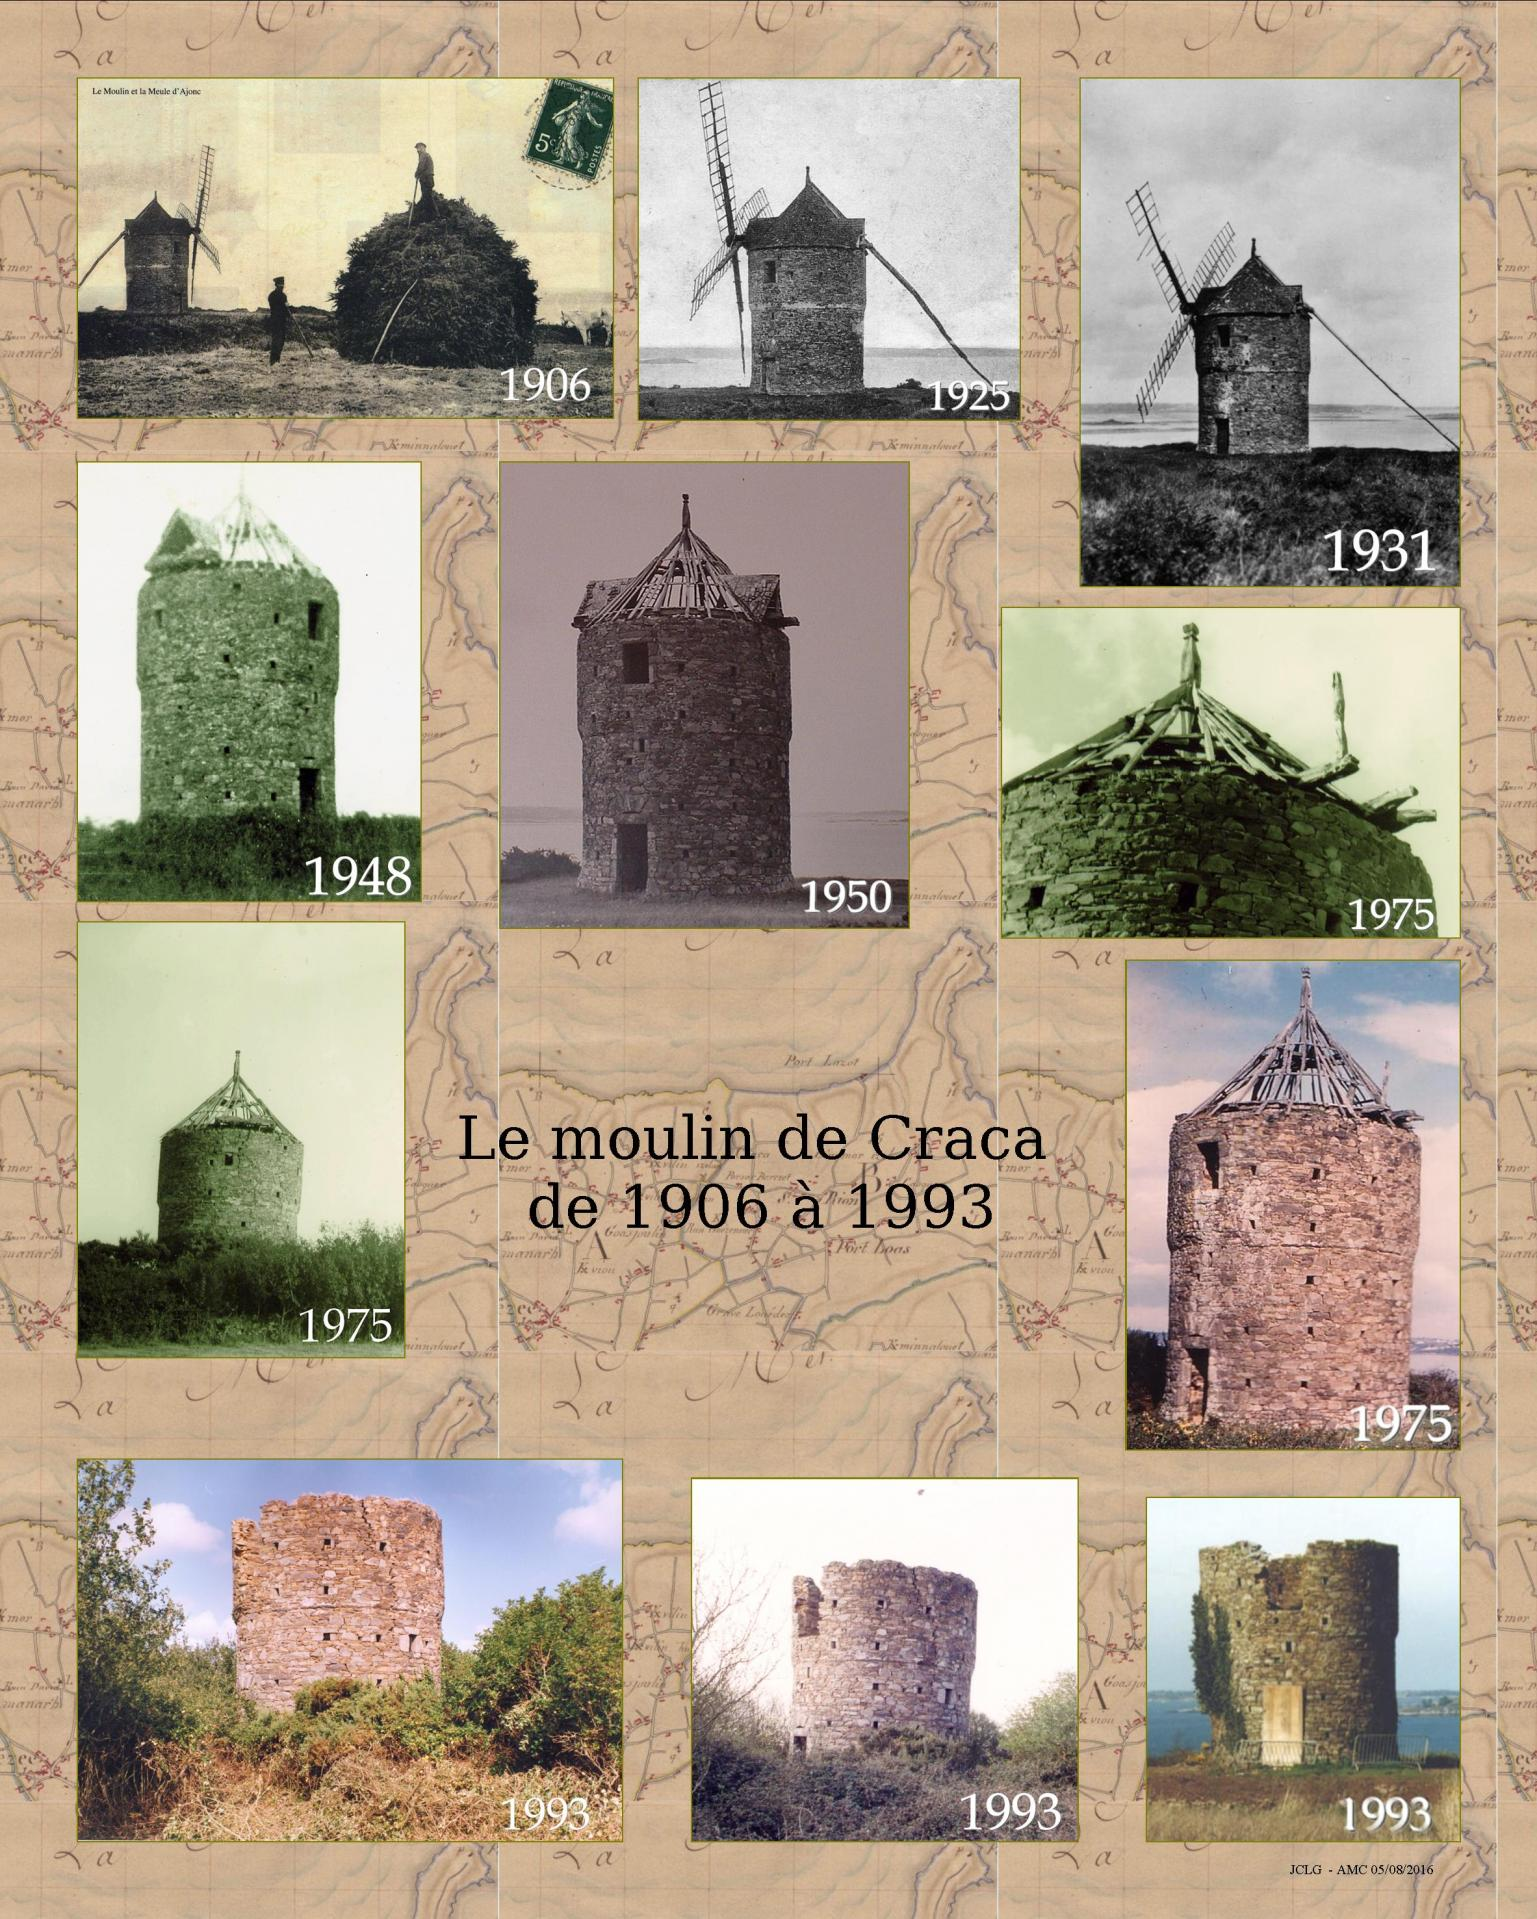 Moulin de craca 1906 1993